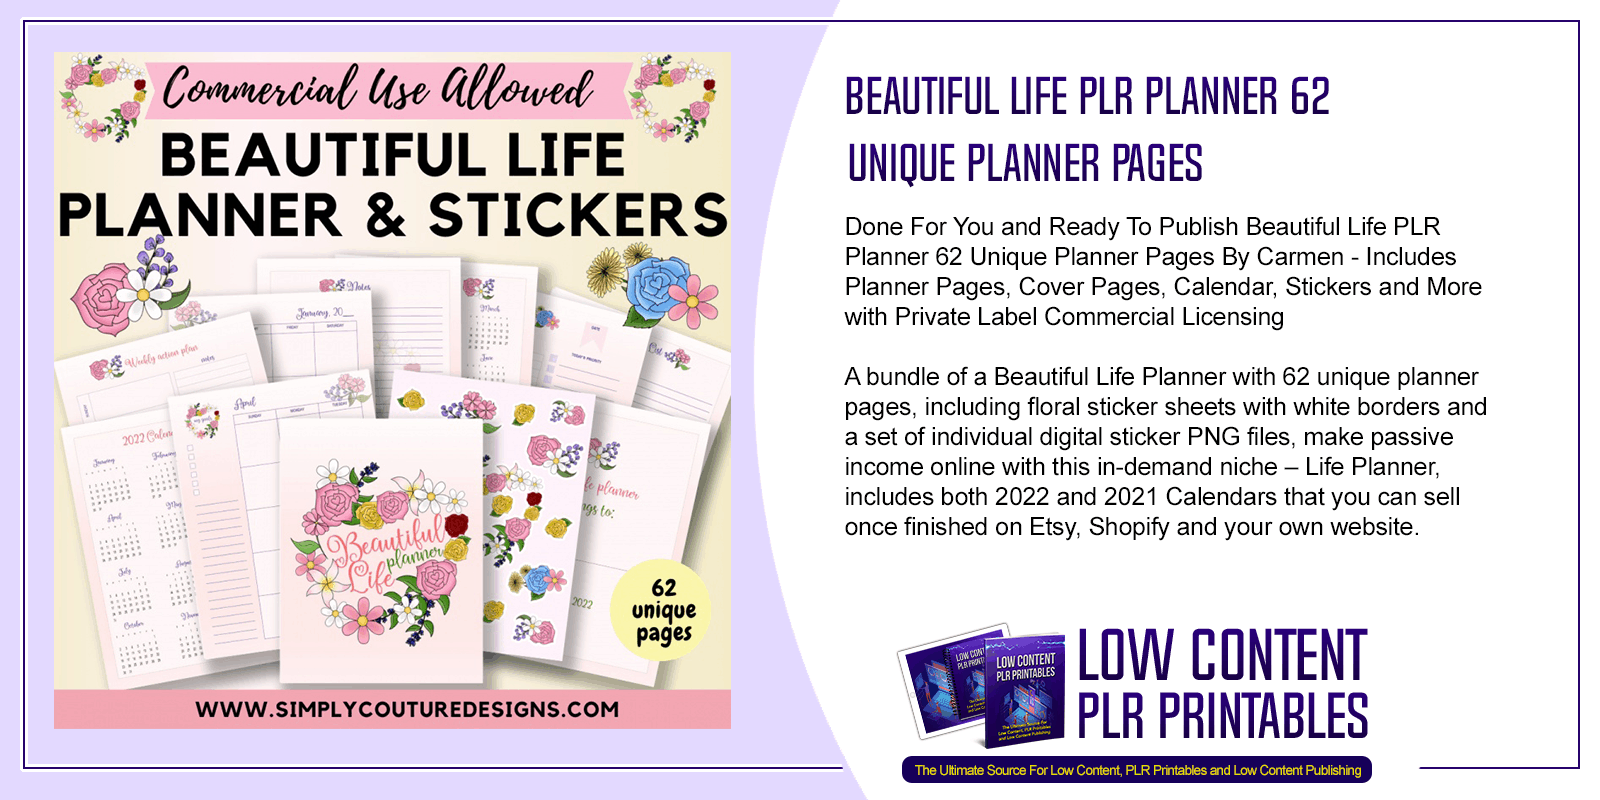 Beautiful Life PLR Planner 62 Unique Planner Pages